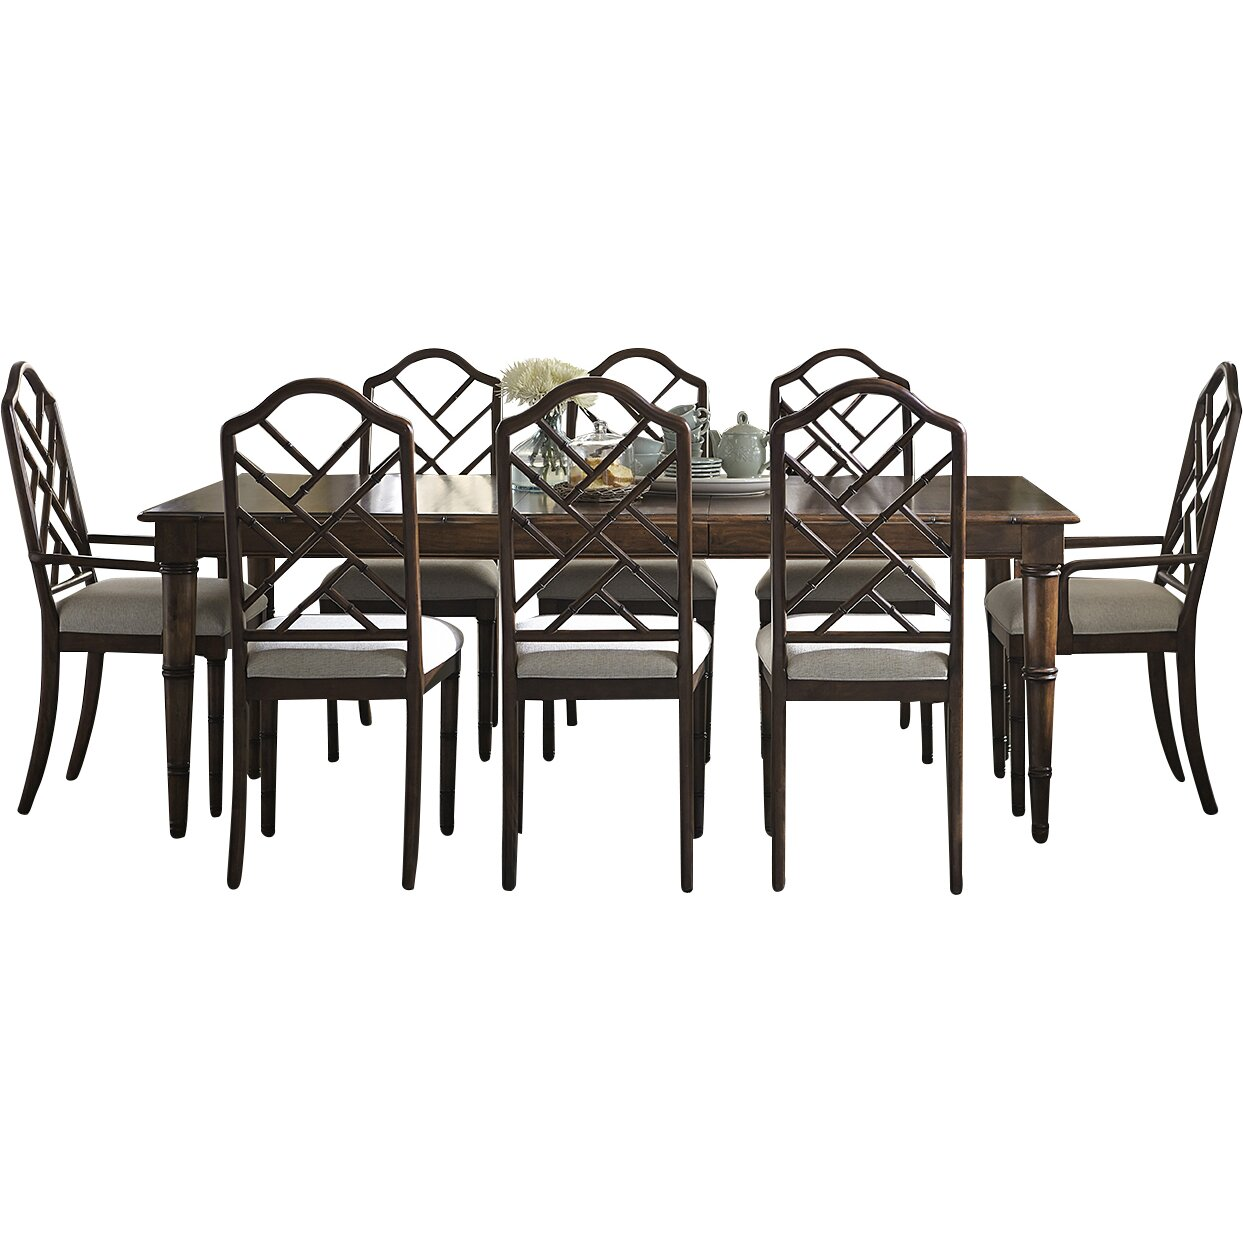 Bay Isle Home Grayvik Extendable Dining Table amp Reviews  : Bay Isle Home Grayvik Extendable Dining Table from www.wayfair.ca size 1243 x 1243 jpeg 187kB